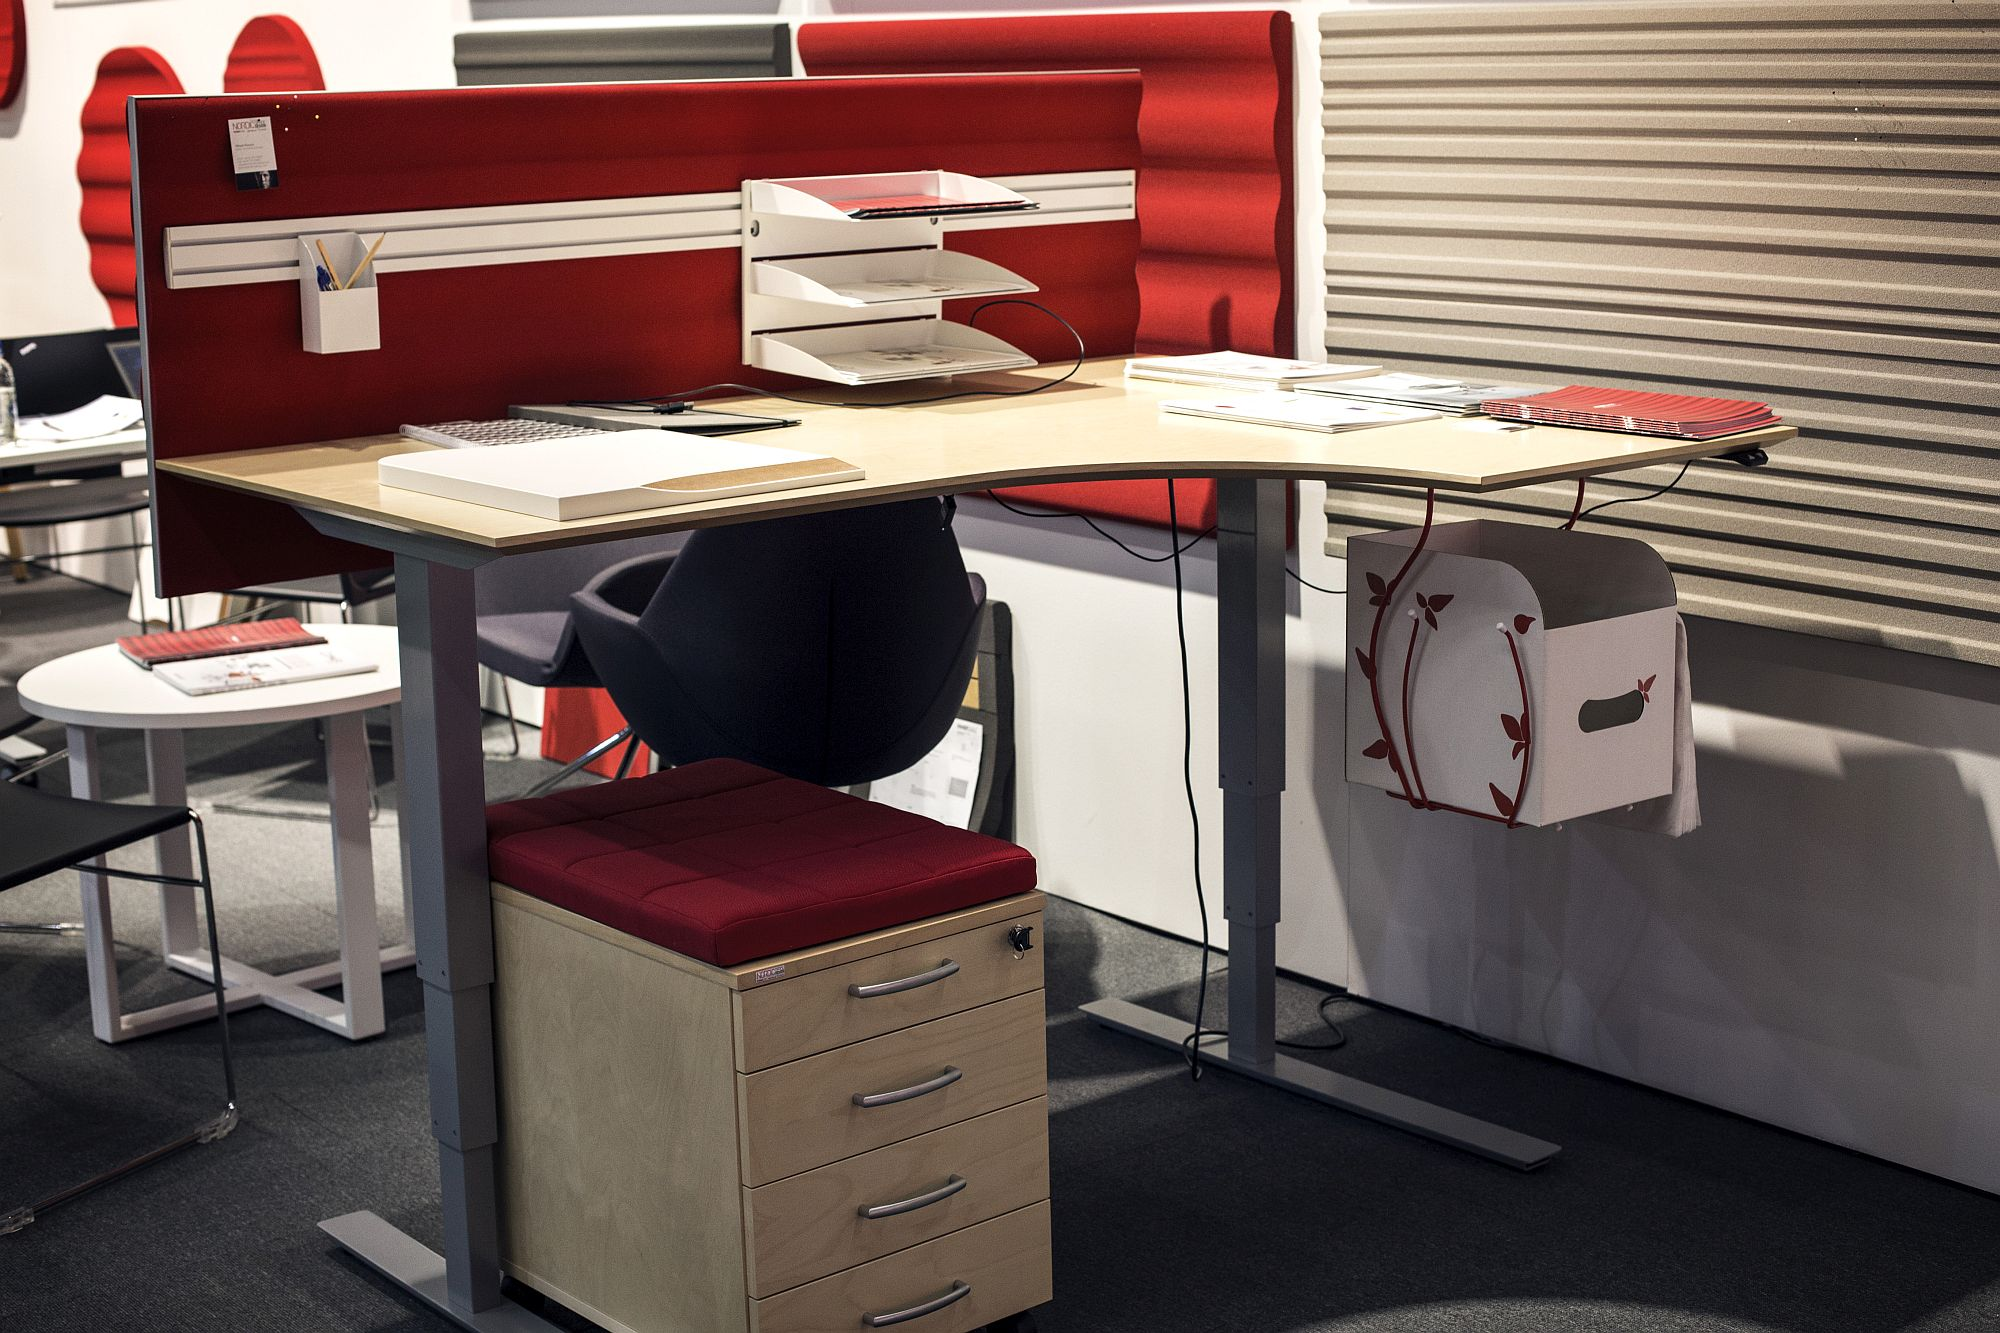 Small Desk Options Space Savvy Workspaces Finding The Right Desk For Your